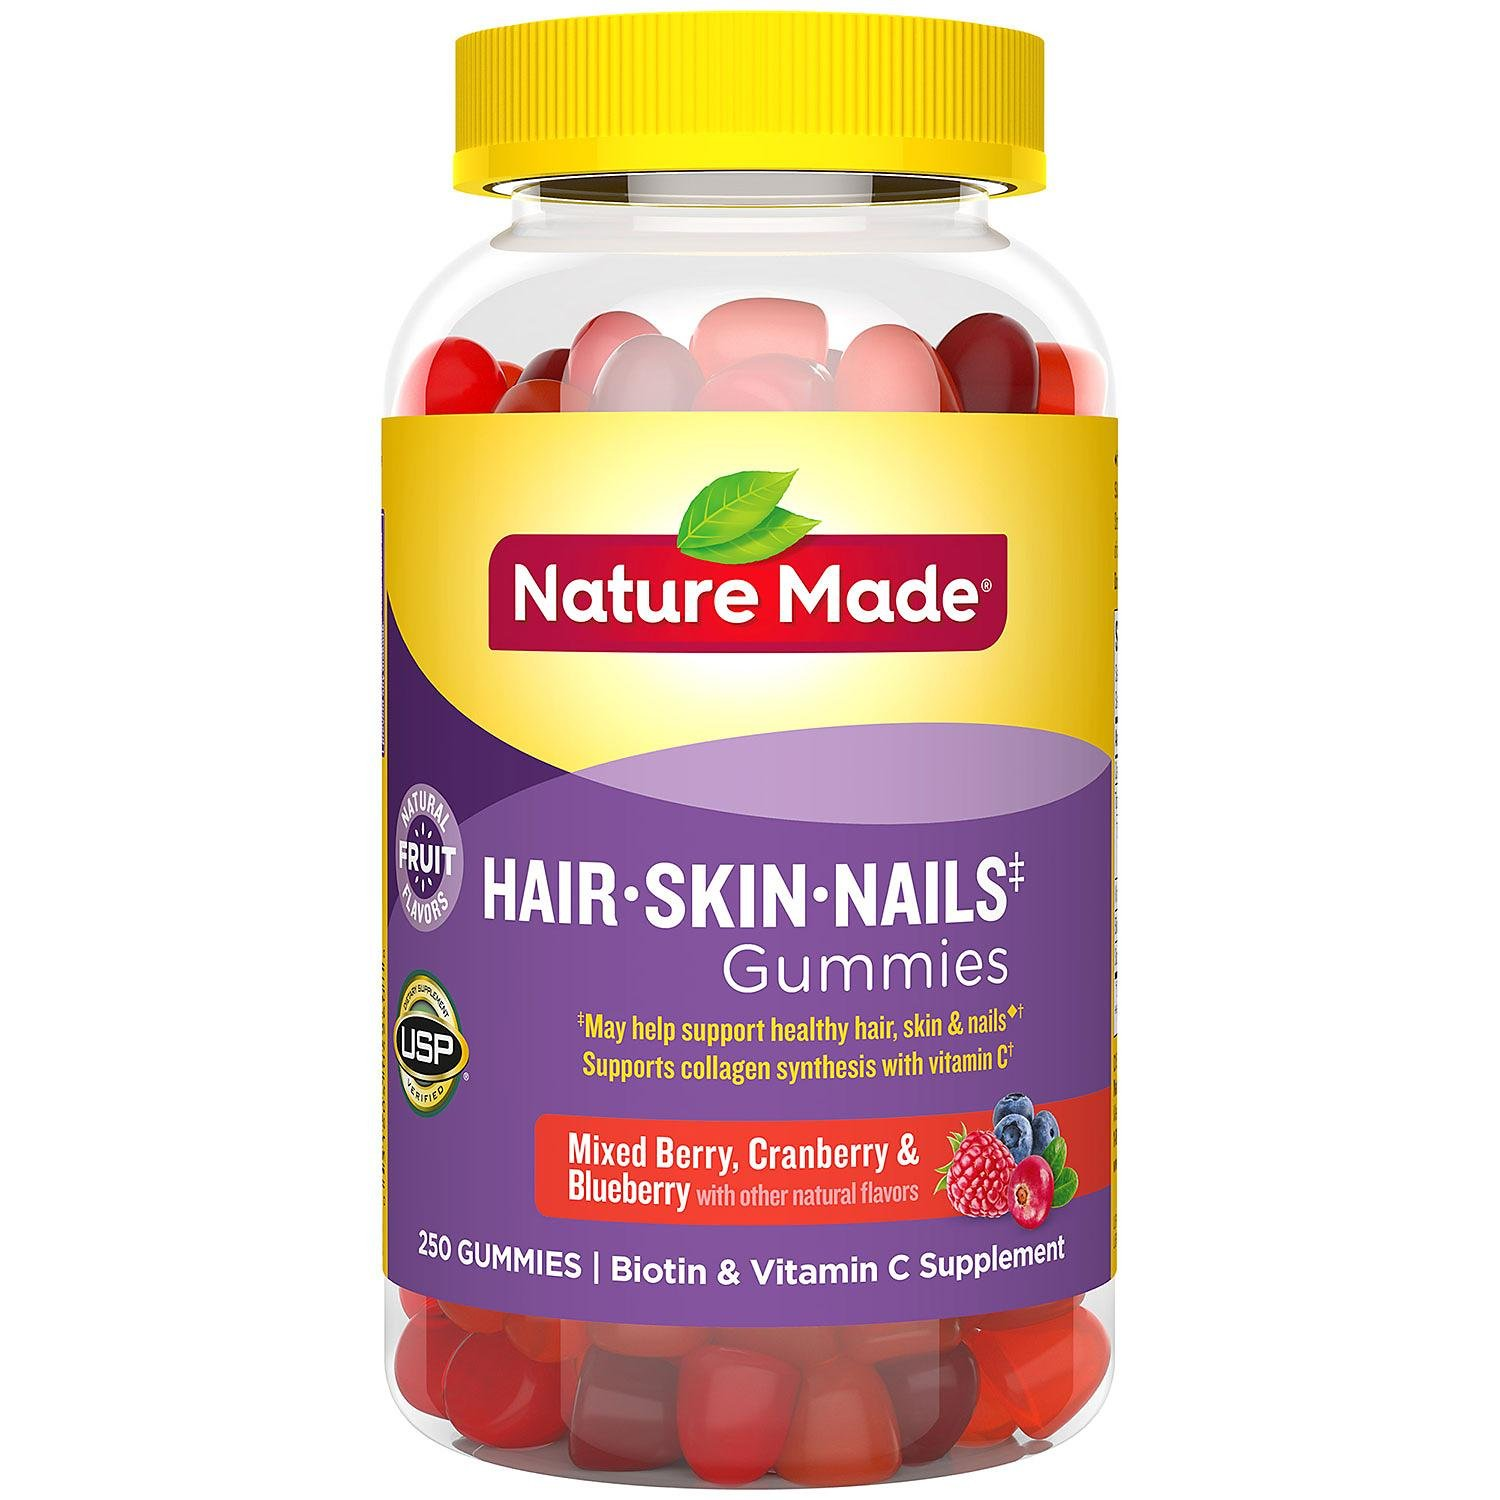 Nature Made Hair, Skin & Nails 2,500 mcg Gummies (250 ct.)